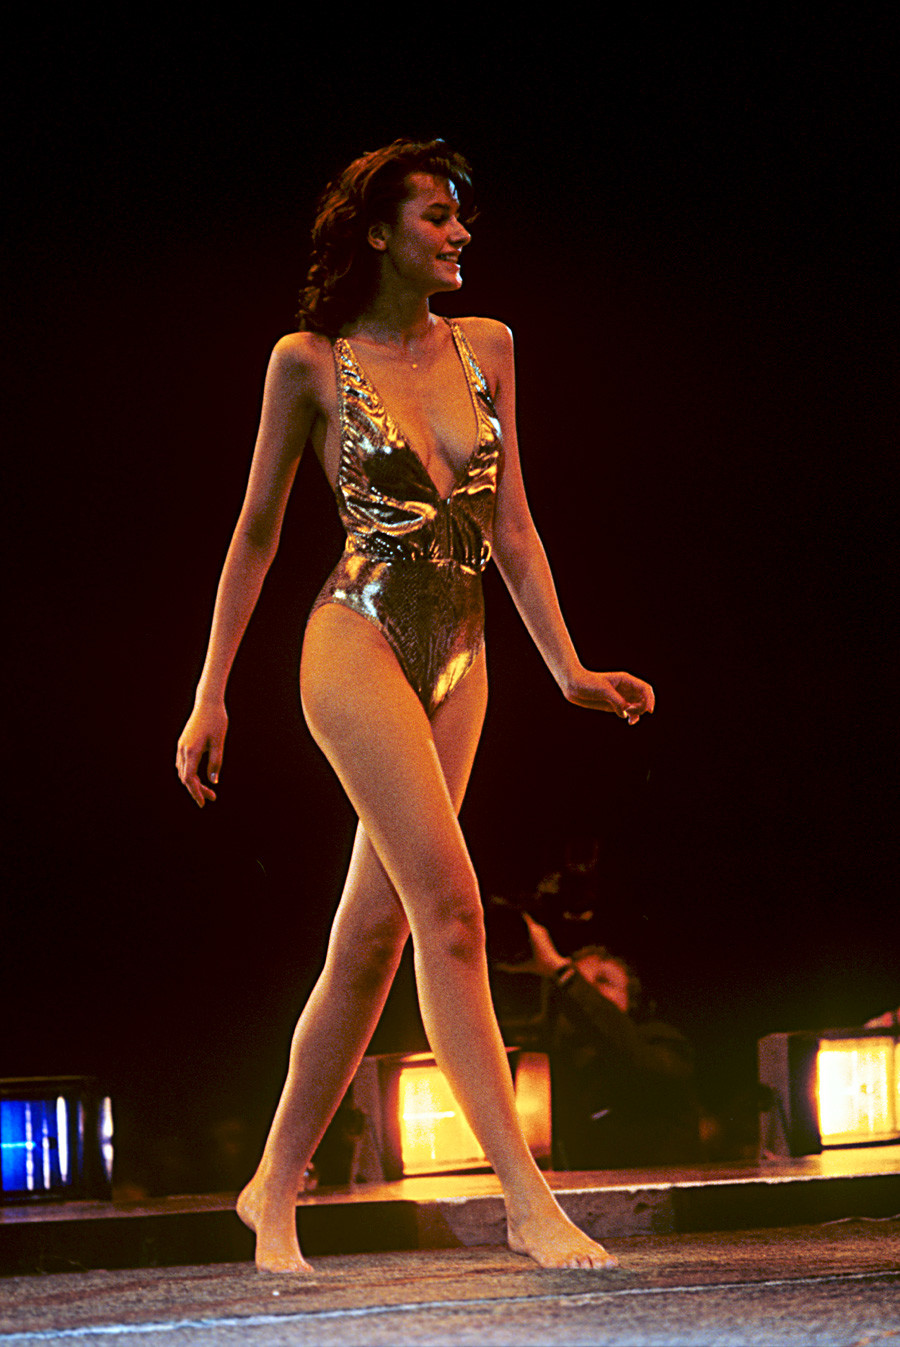 Maria Kalinina (school girl, 17 years old) during the catwalk in swimwear.